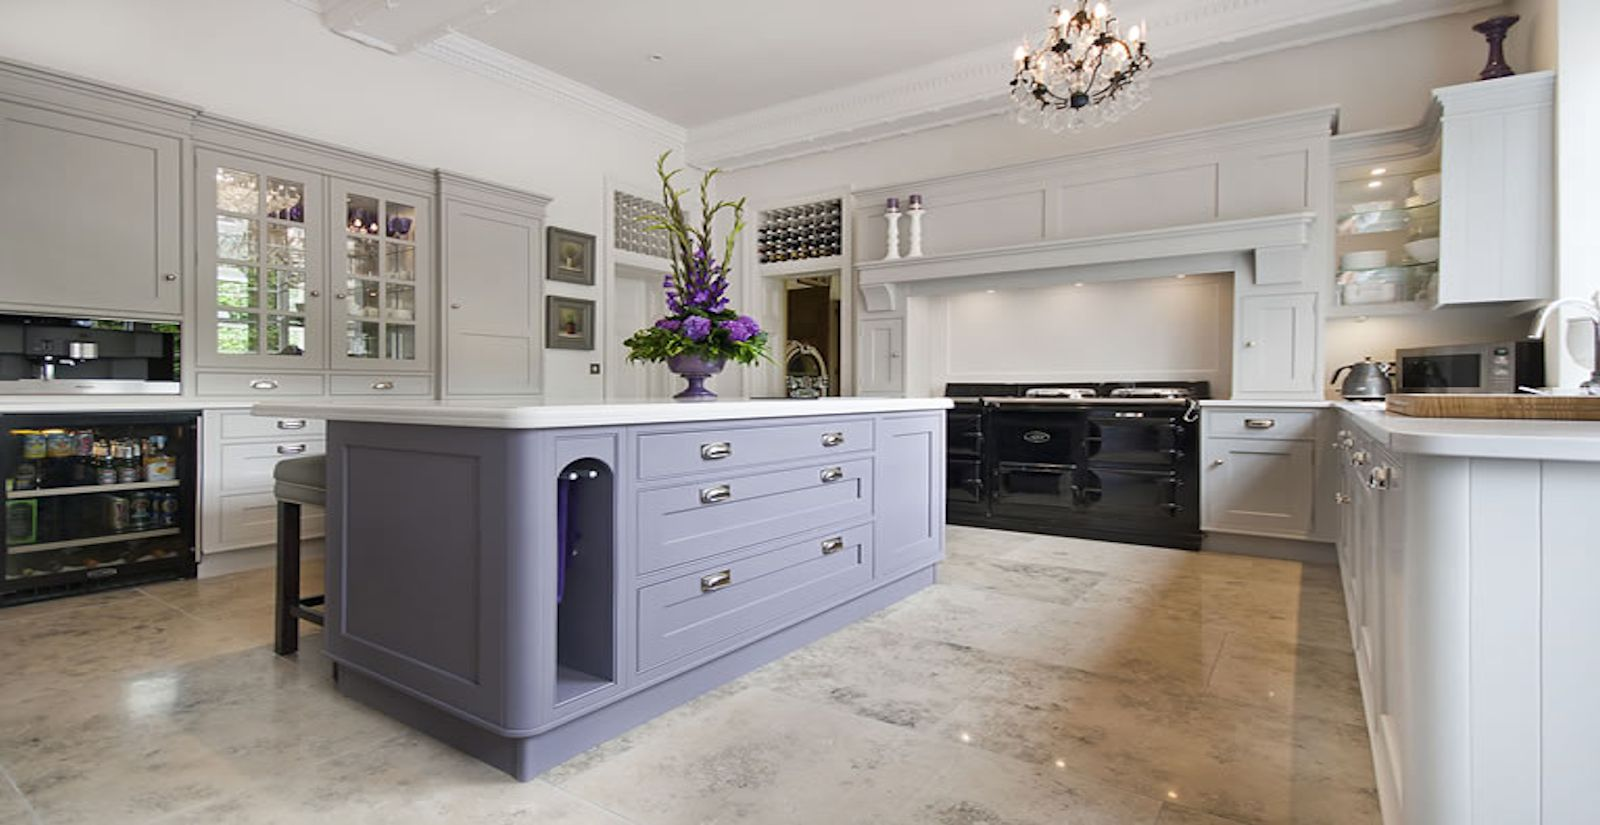 Hand Painted Kitchens UK - A select team of independent